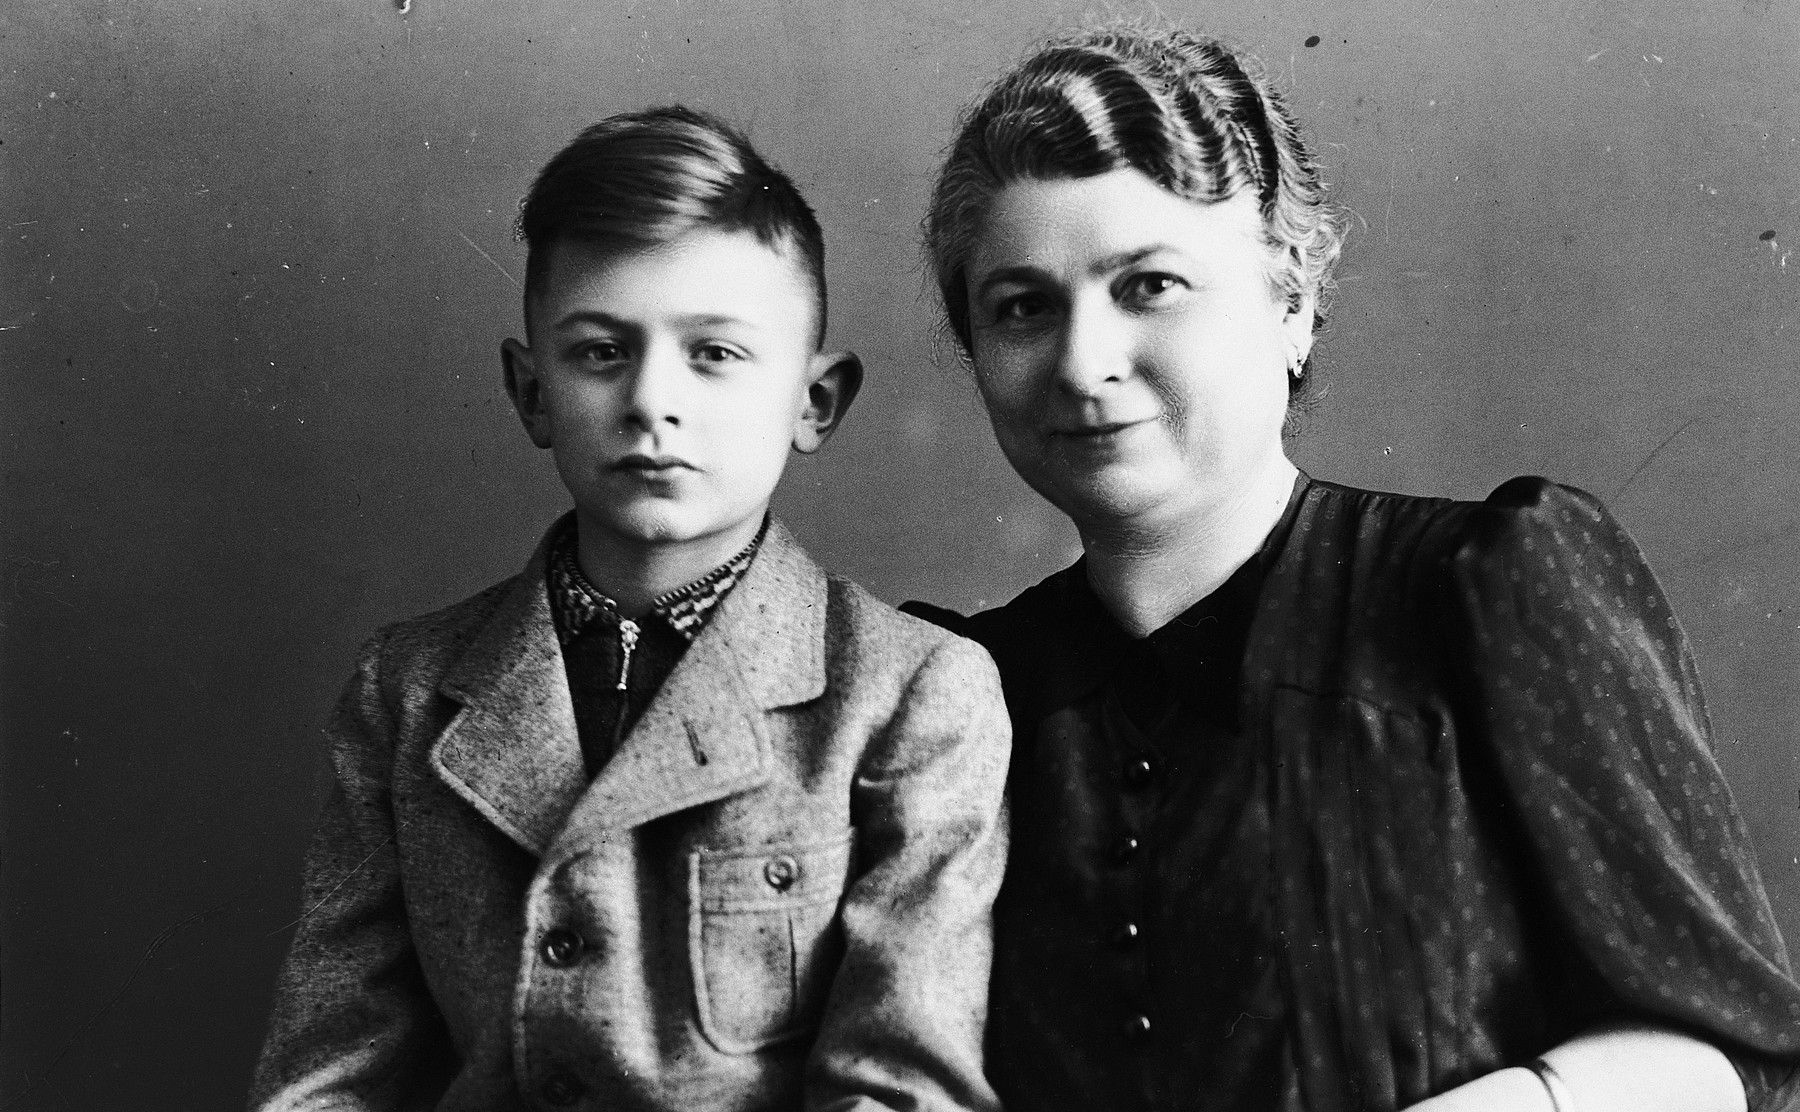 Studio portrait of a young boy, Norbert  Bikales, and his mother Bertha.